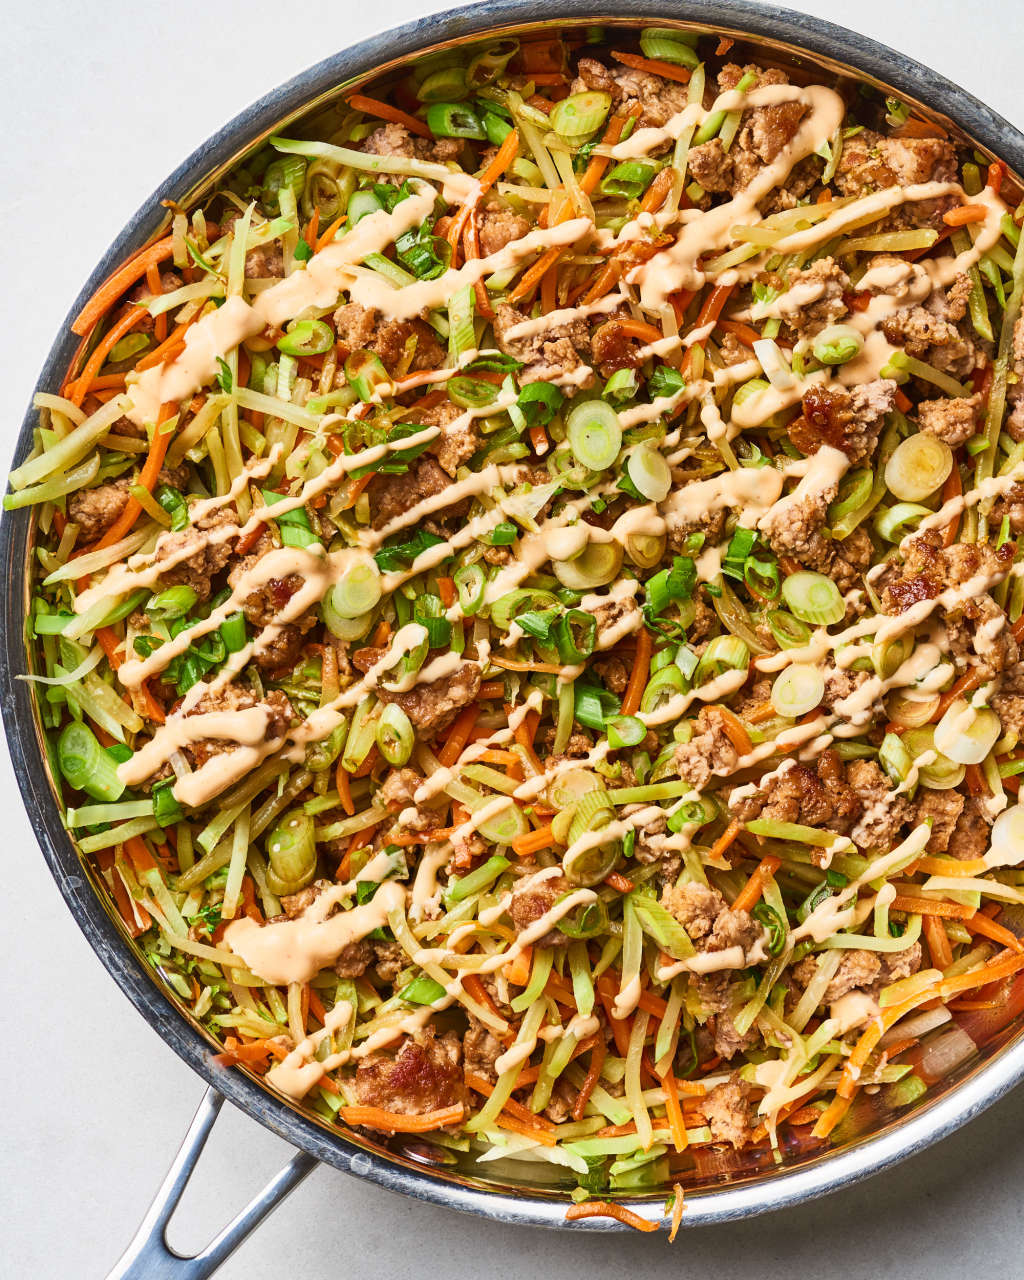 This Easy Egg Roll Skillet Is Our Favorite Whole30 Meal